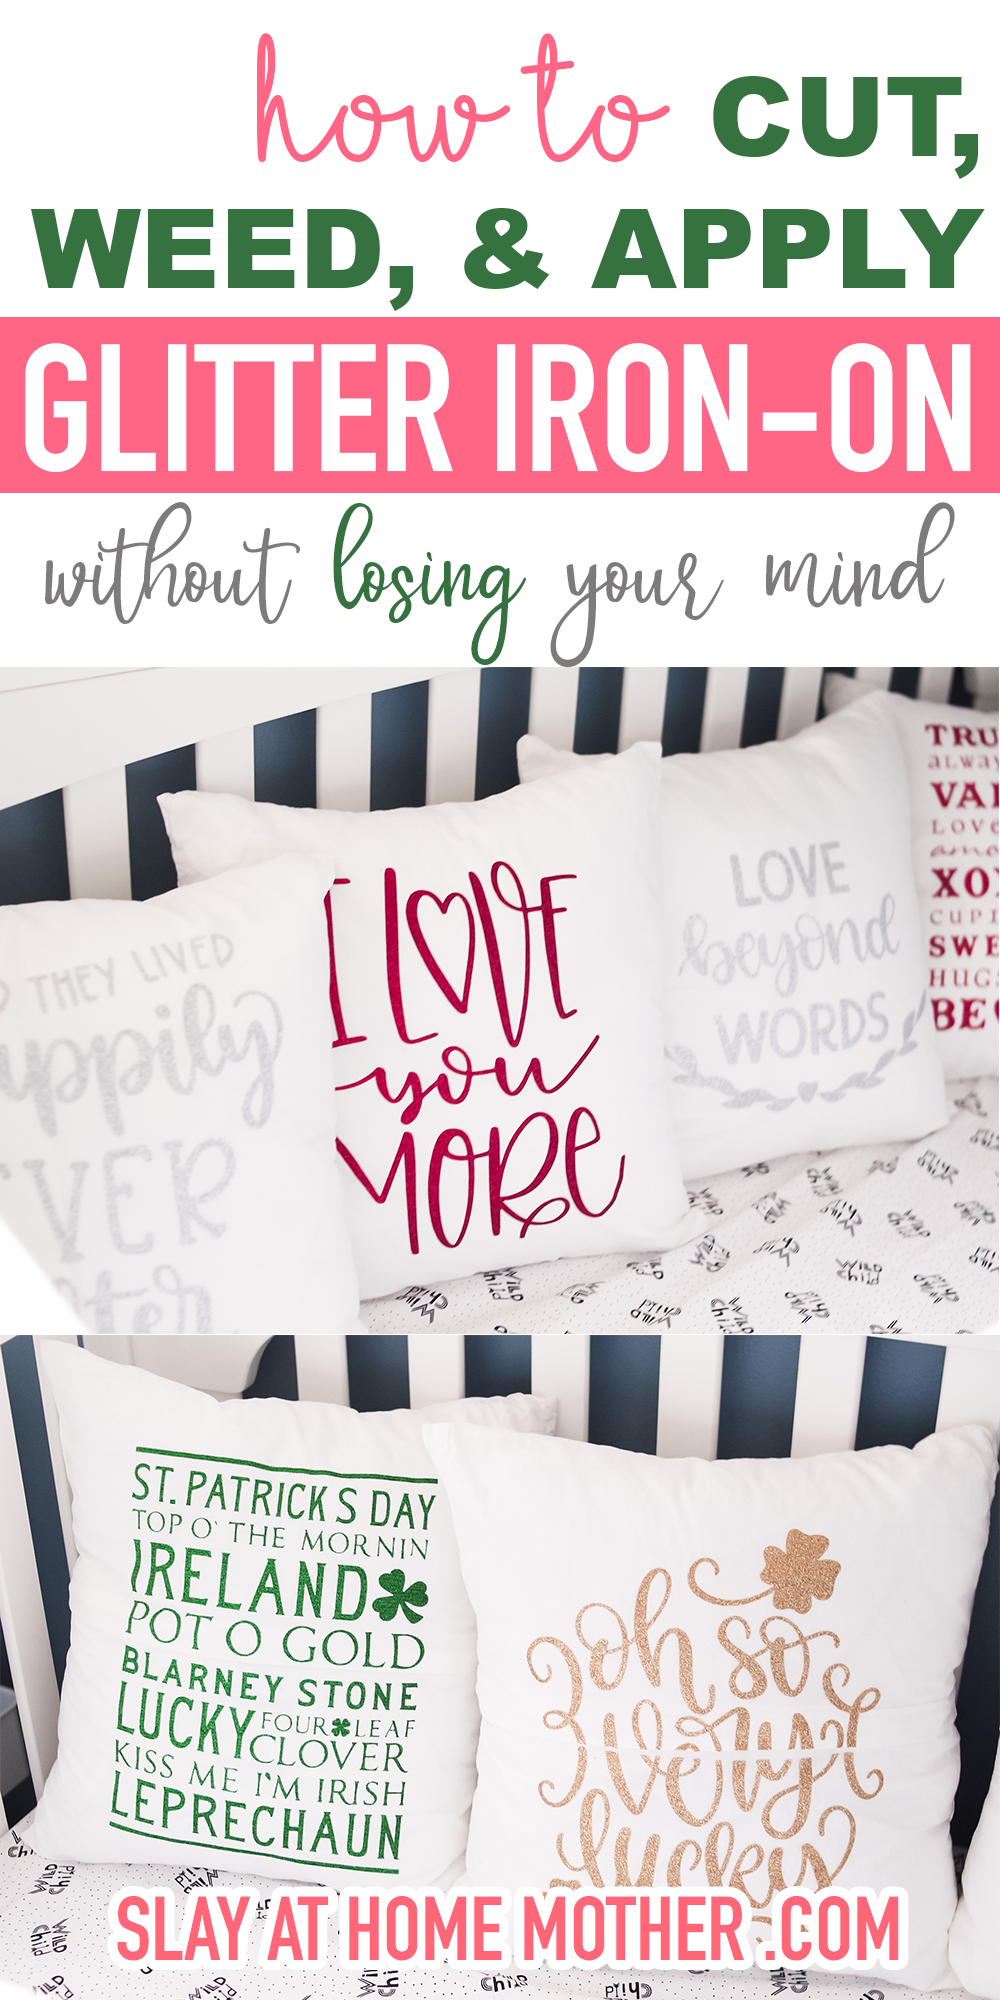 How to work with Cricut ron-pn glitter vinyl HTV without losing your mind - cut, weed, and apply with ease and make these adorable reversible pillow covers #slayathomemother #cricut #htv #ironon #crafts